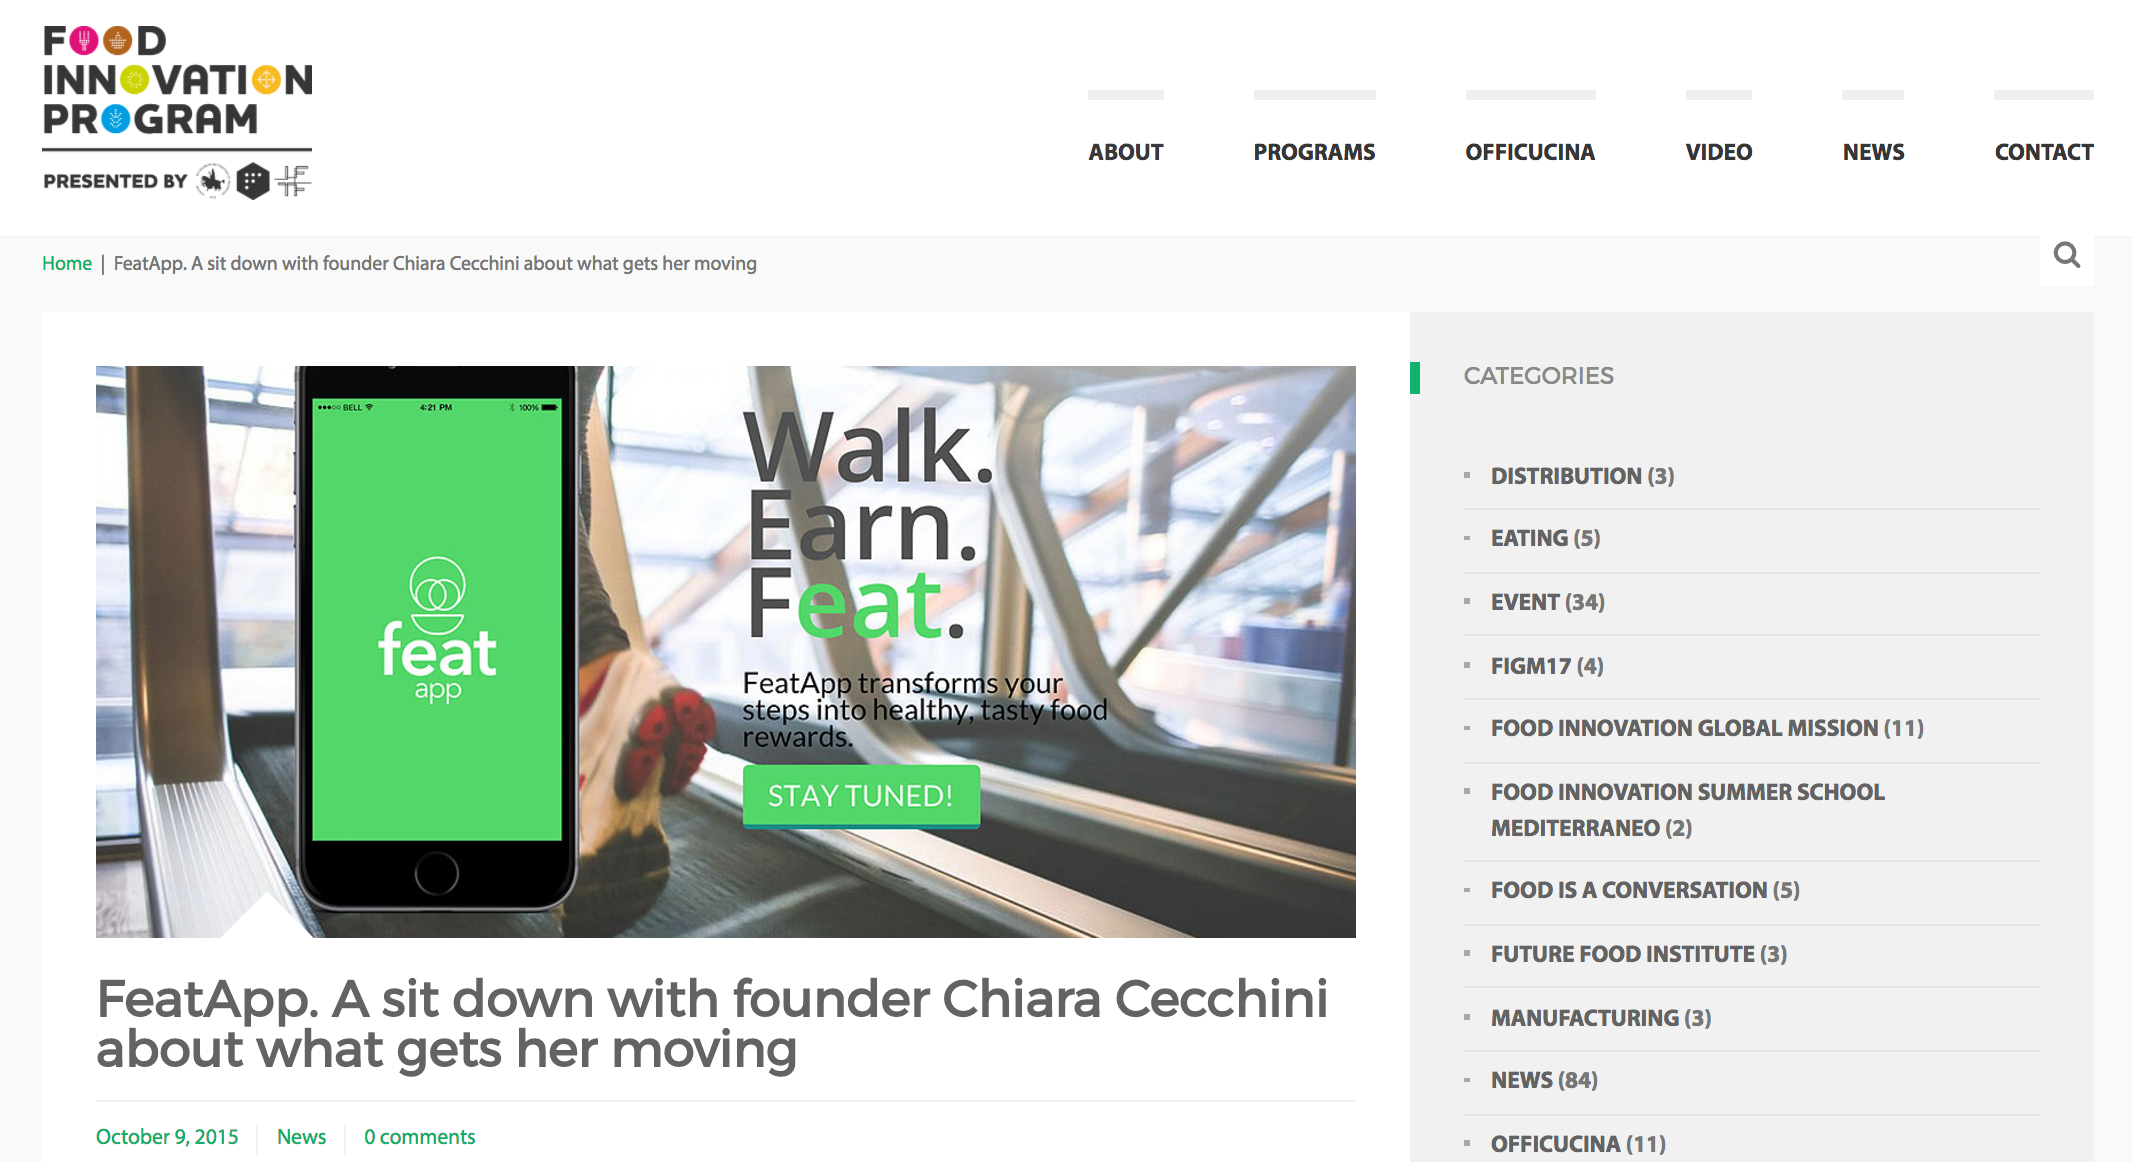 featapp. a sit down with founder chiara cecchini about what gets her moving - Food Innovation Program, October 2015